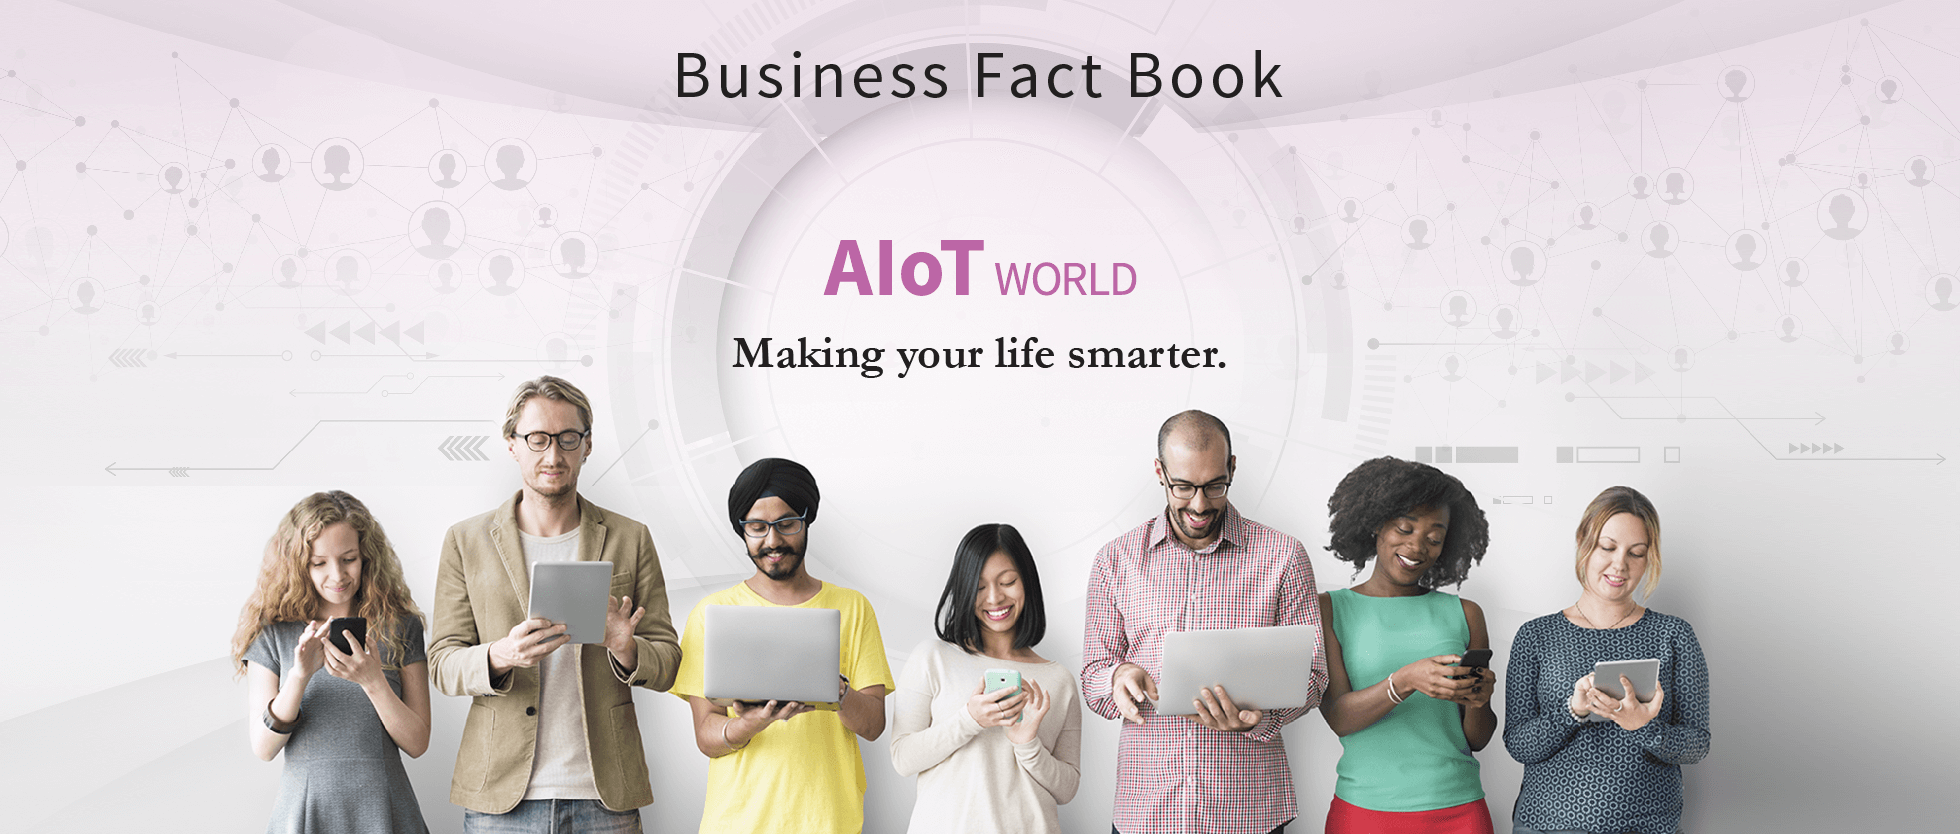 Business Fact Book: AIoT World